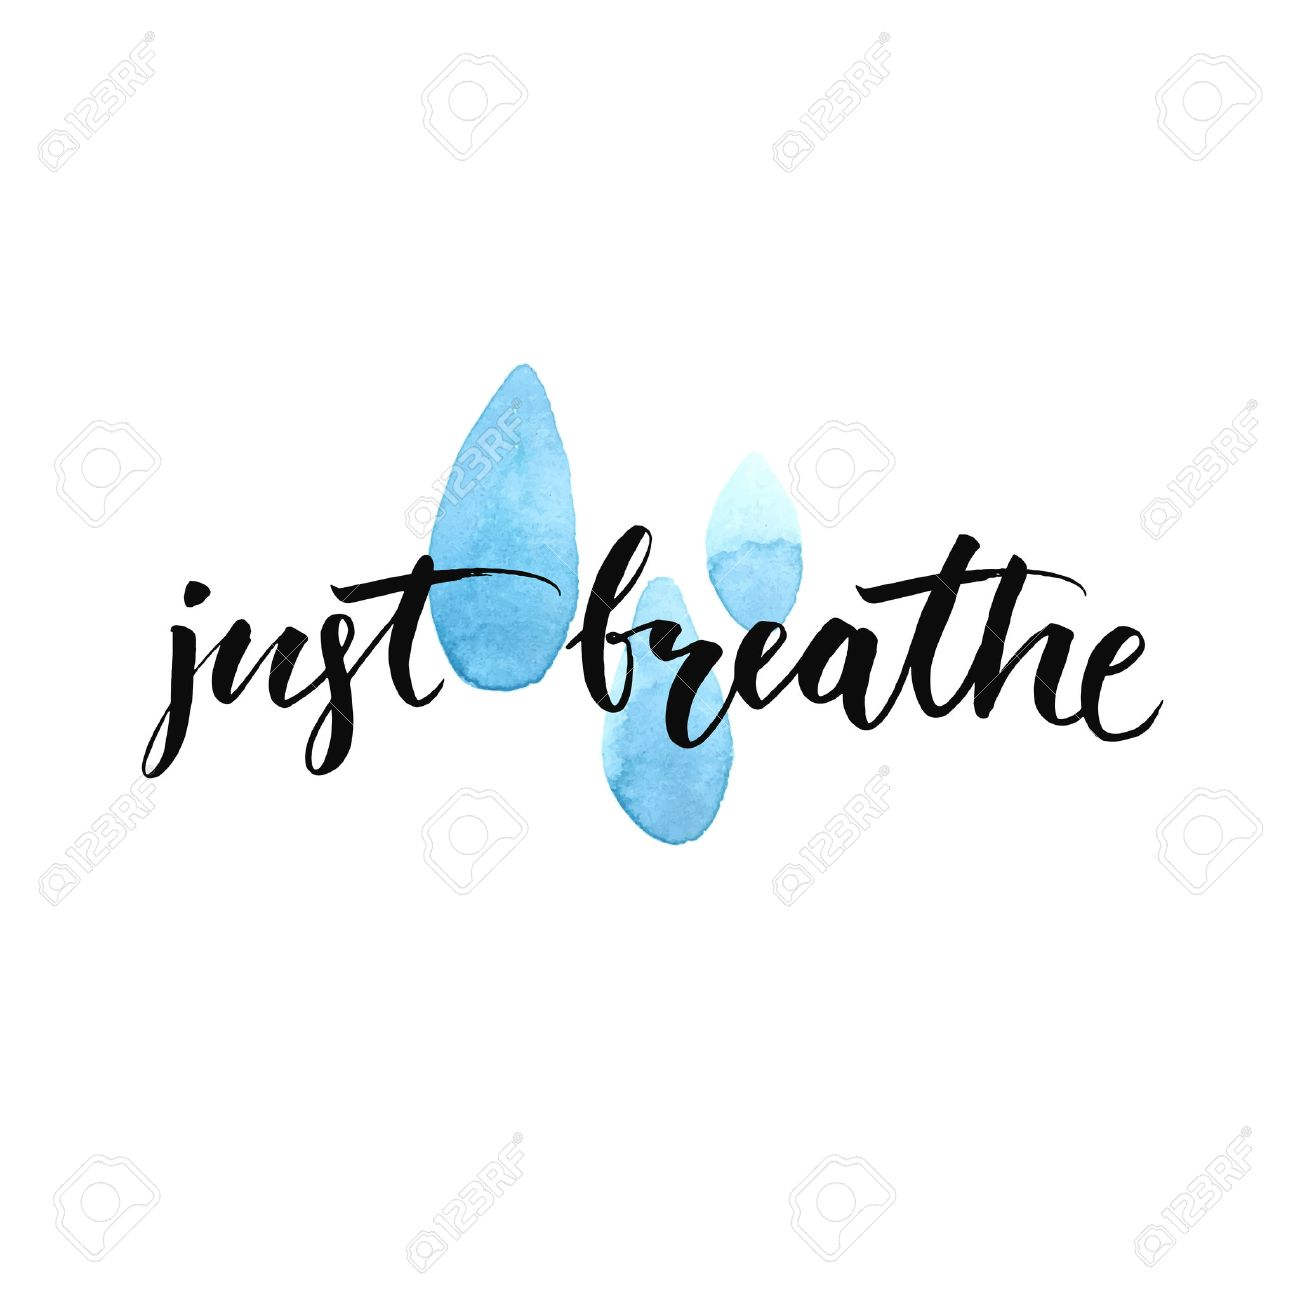 Just breathe. Inspirational quote calligraphy at blue watercolor raindrop spots. Vector brush lettering about life, calm, positive saying. - 47453692